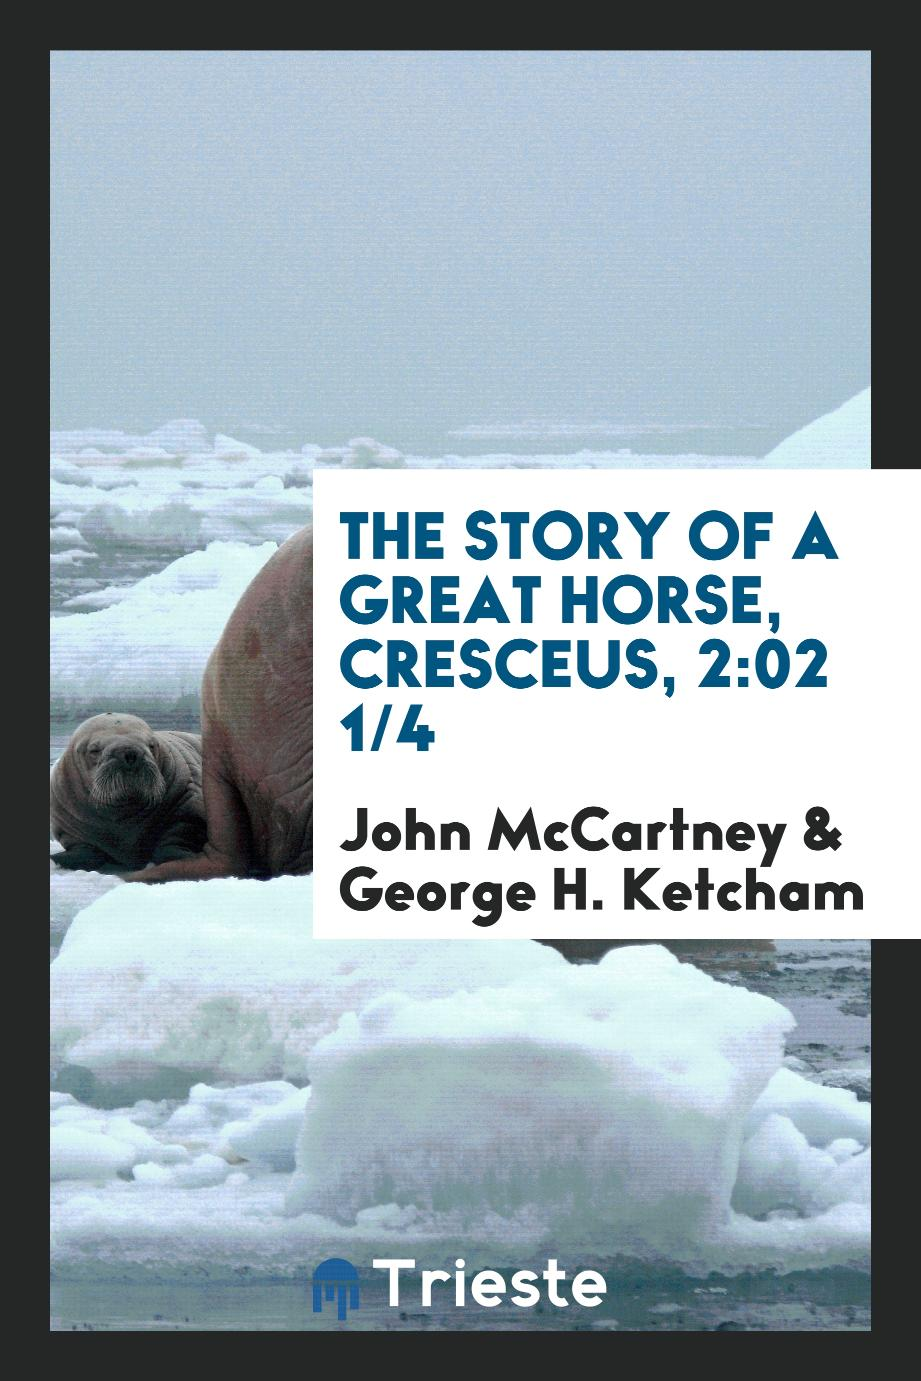 The story of a great horse, Cresceus, 2:02 1/4